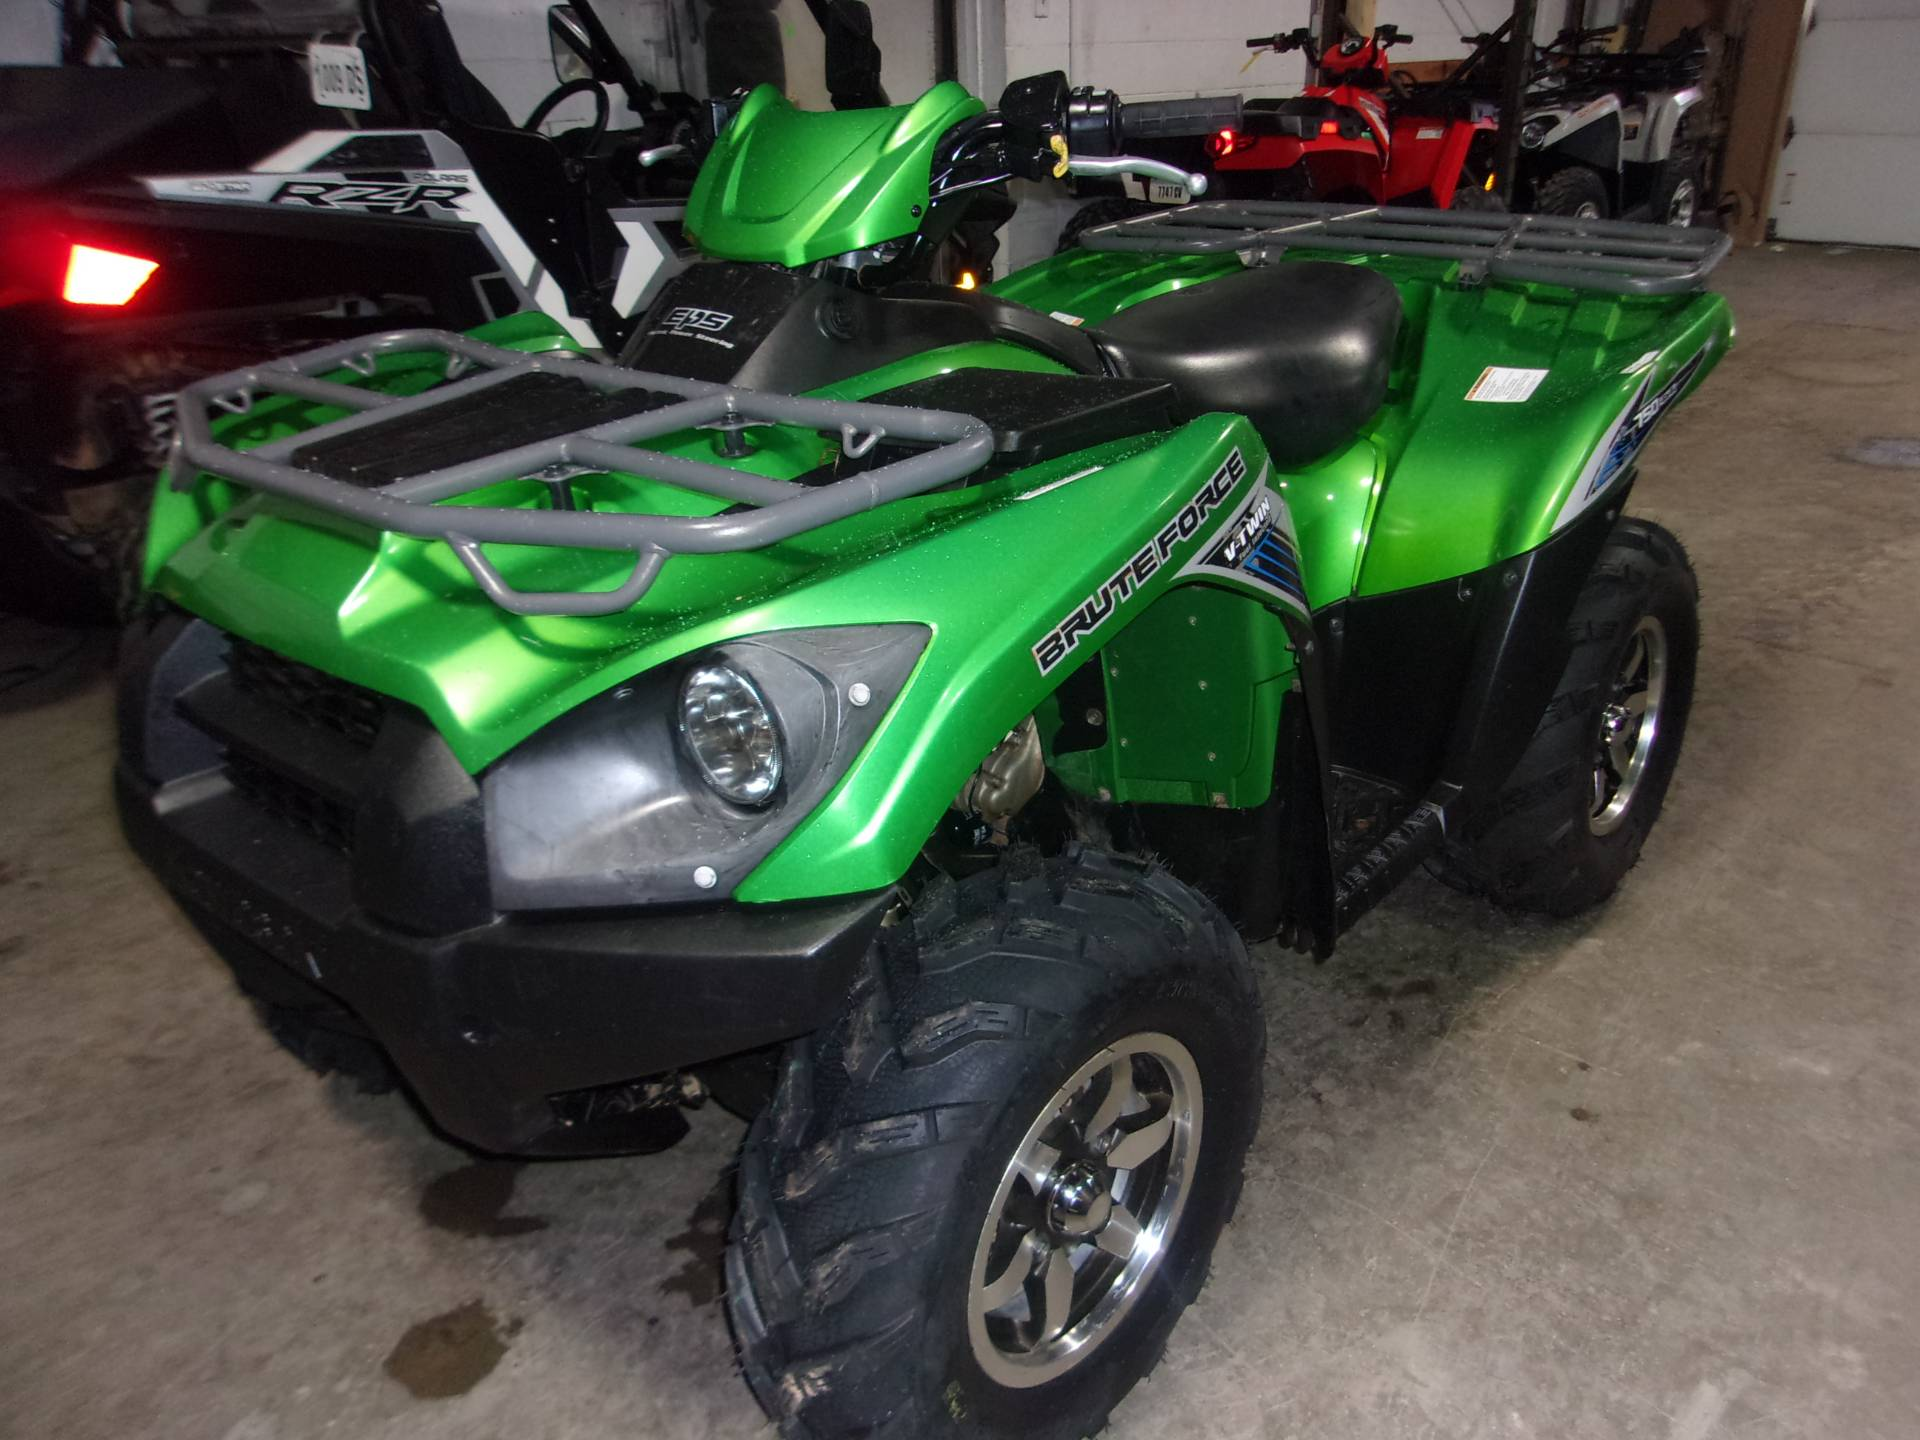 2013 Kawasaki Brute Force® 750 4x4i EPS in Mukwonago, Wisconsin - Photo 3